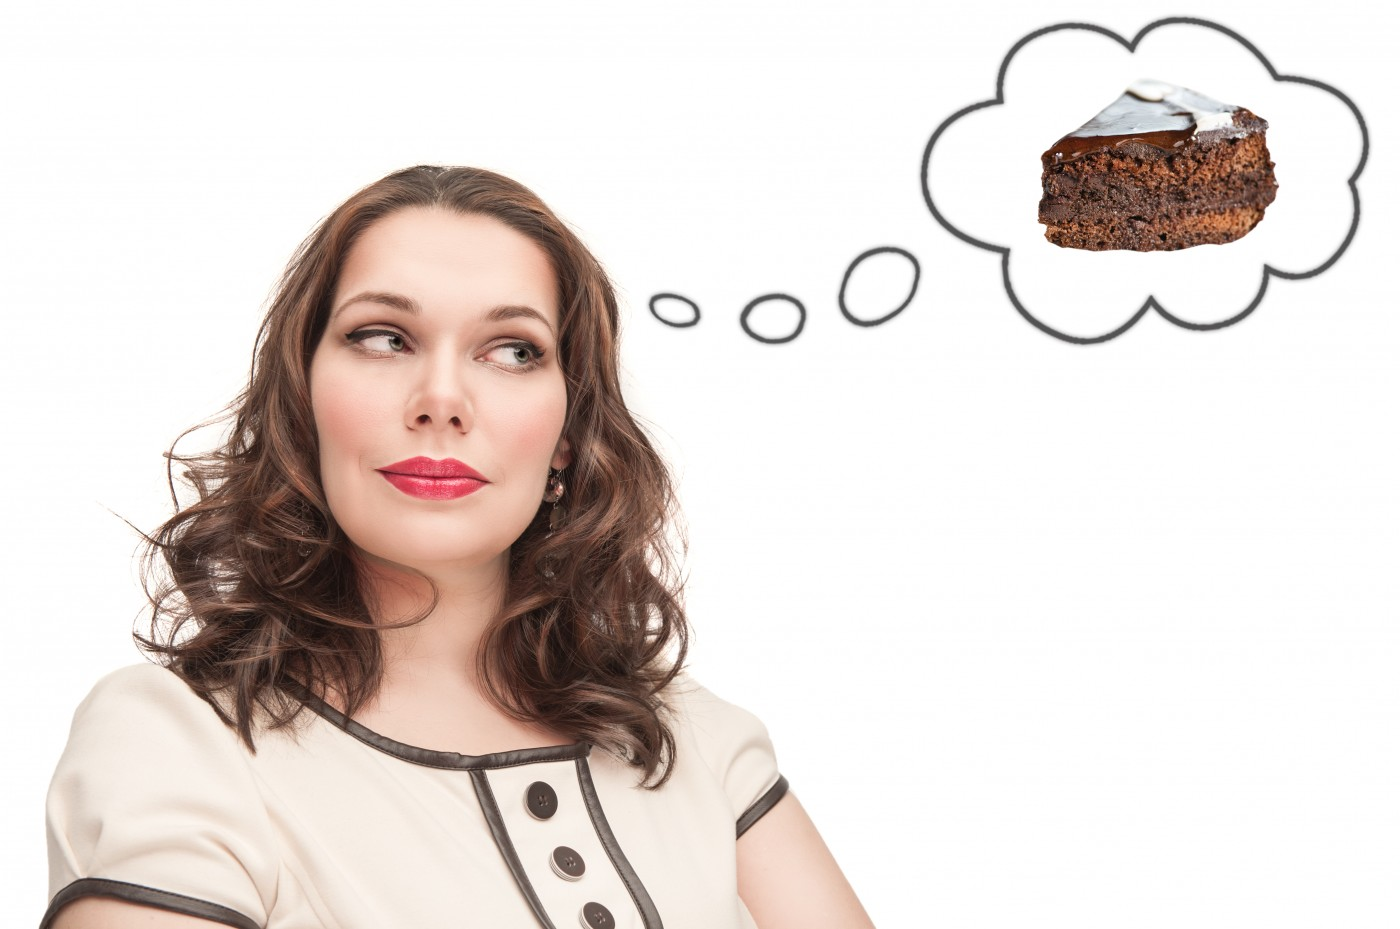 Obese People Have a Greater Mental Ability To Envision Food, Detect Odors